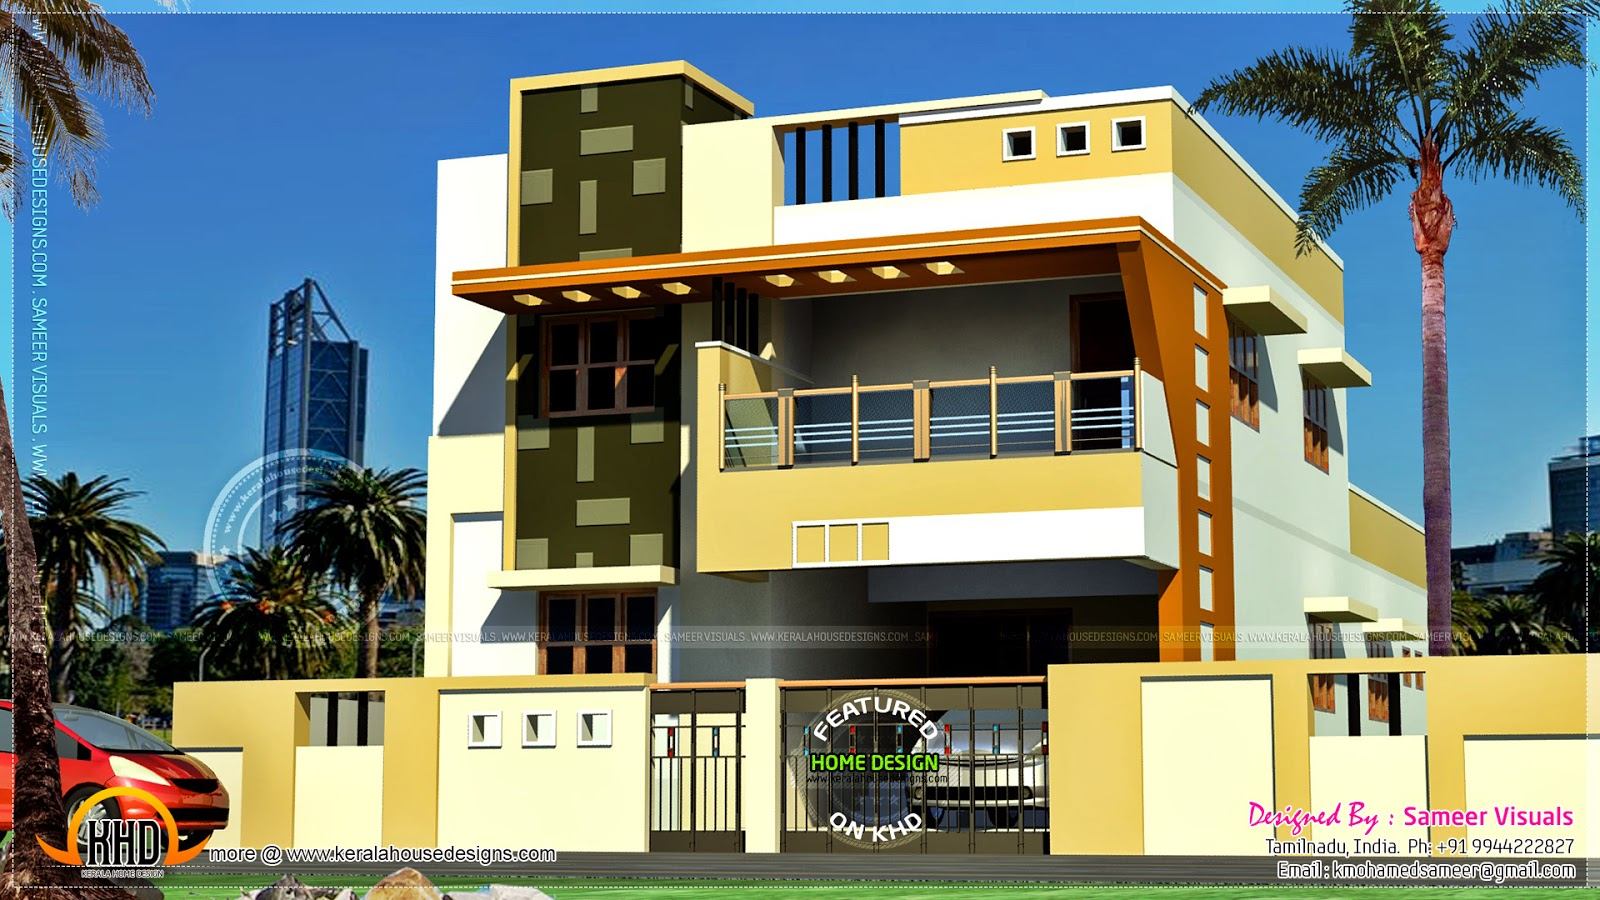 Modern south indian house design kerala home design and for Designs of houses in india